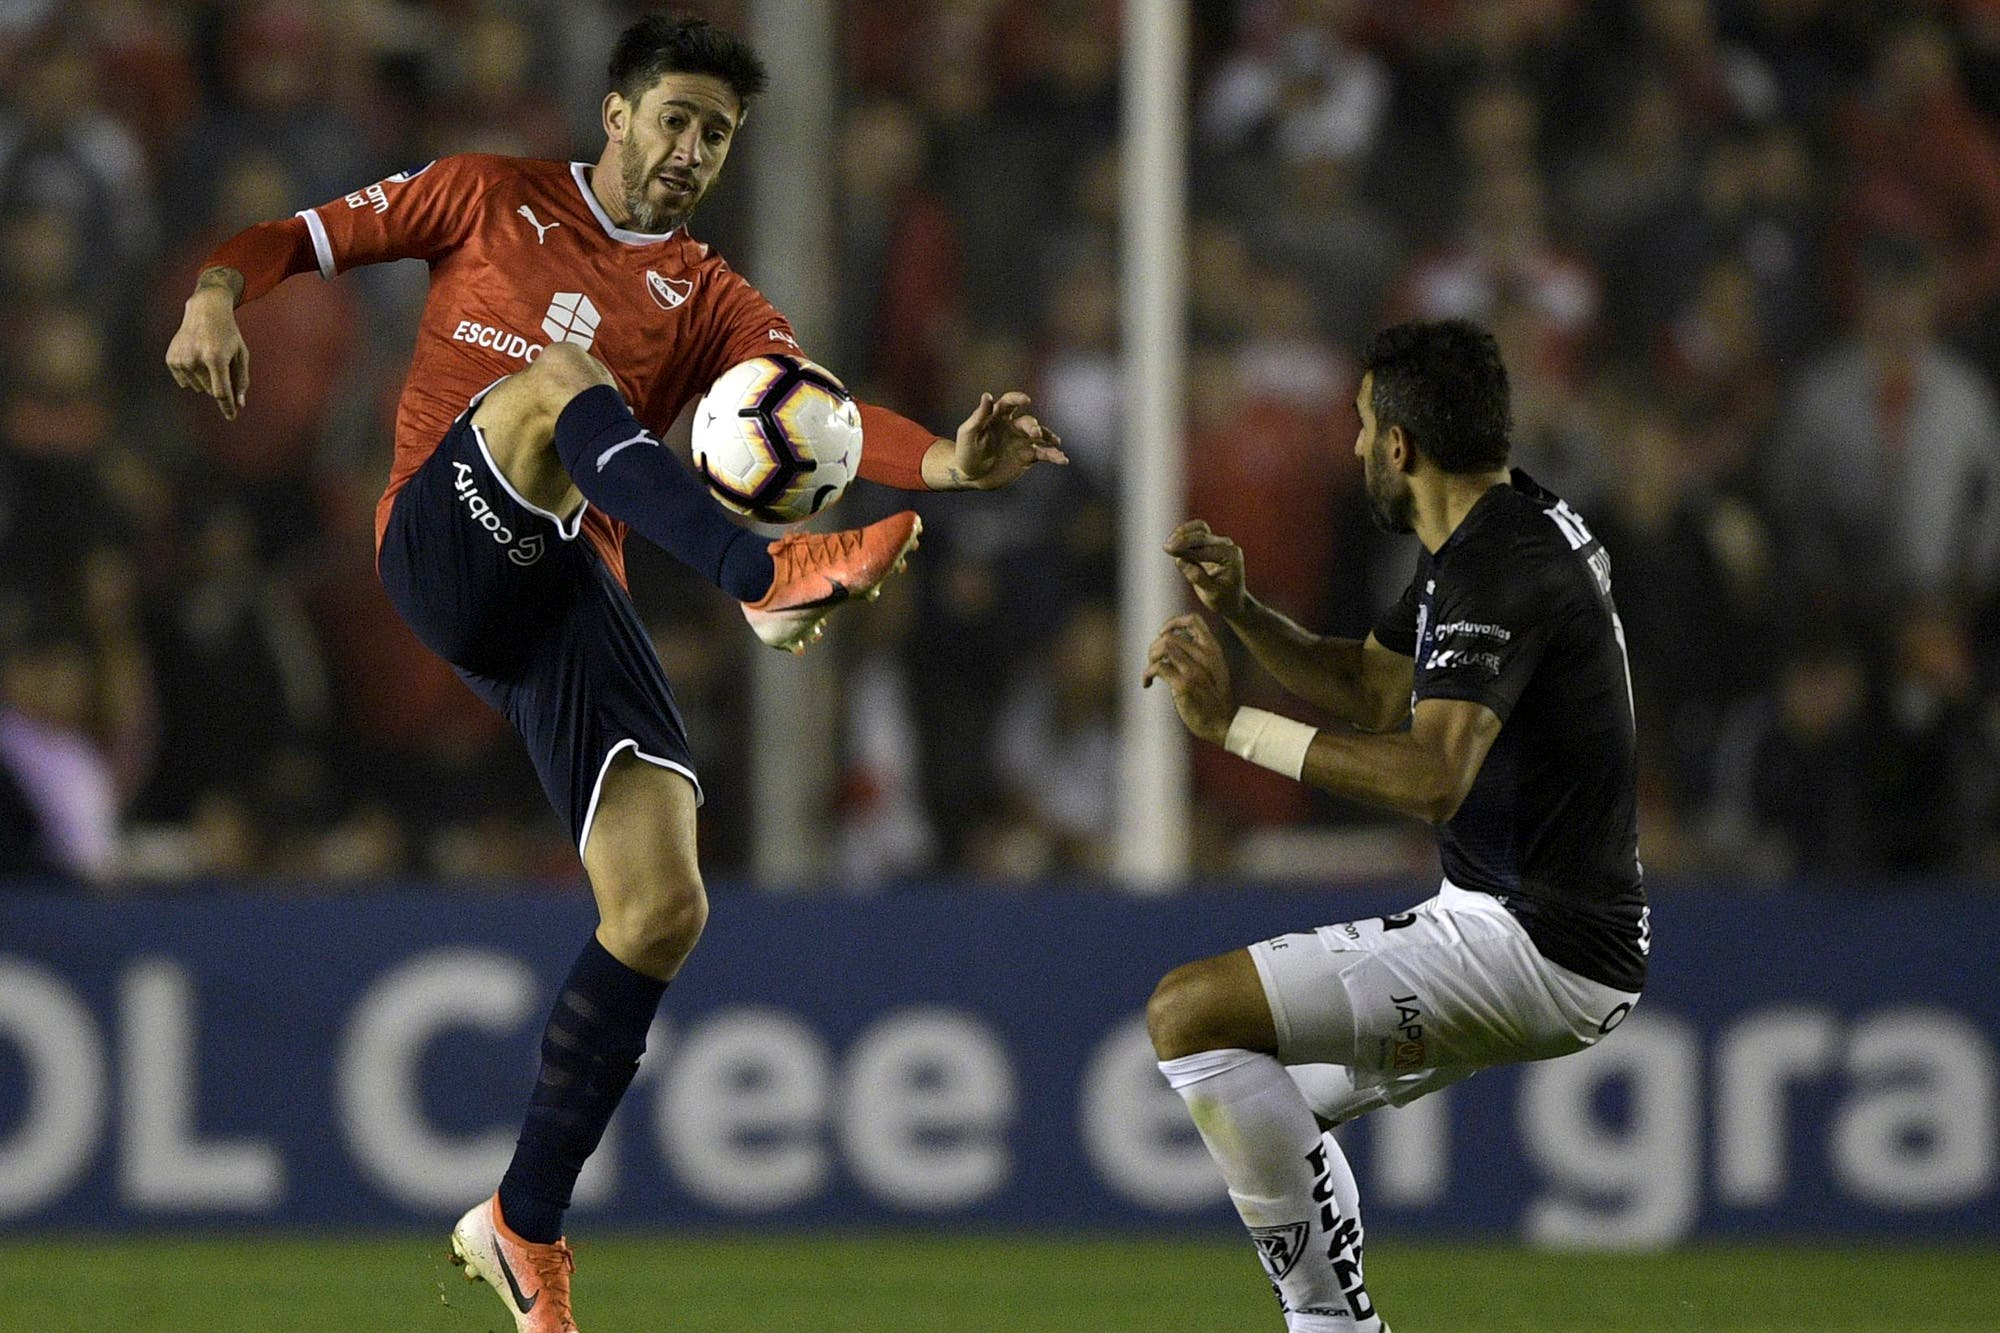 Independiente-Independiente Del Valle, Copa Sudamericana: horario, TV y formaciones